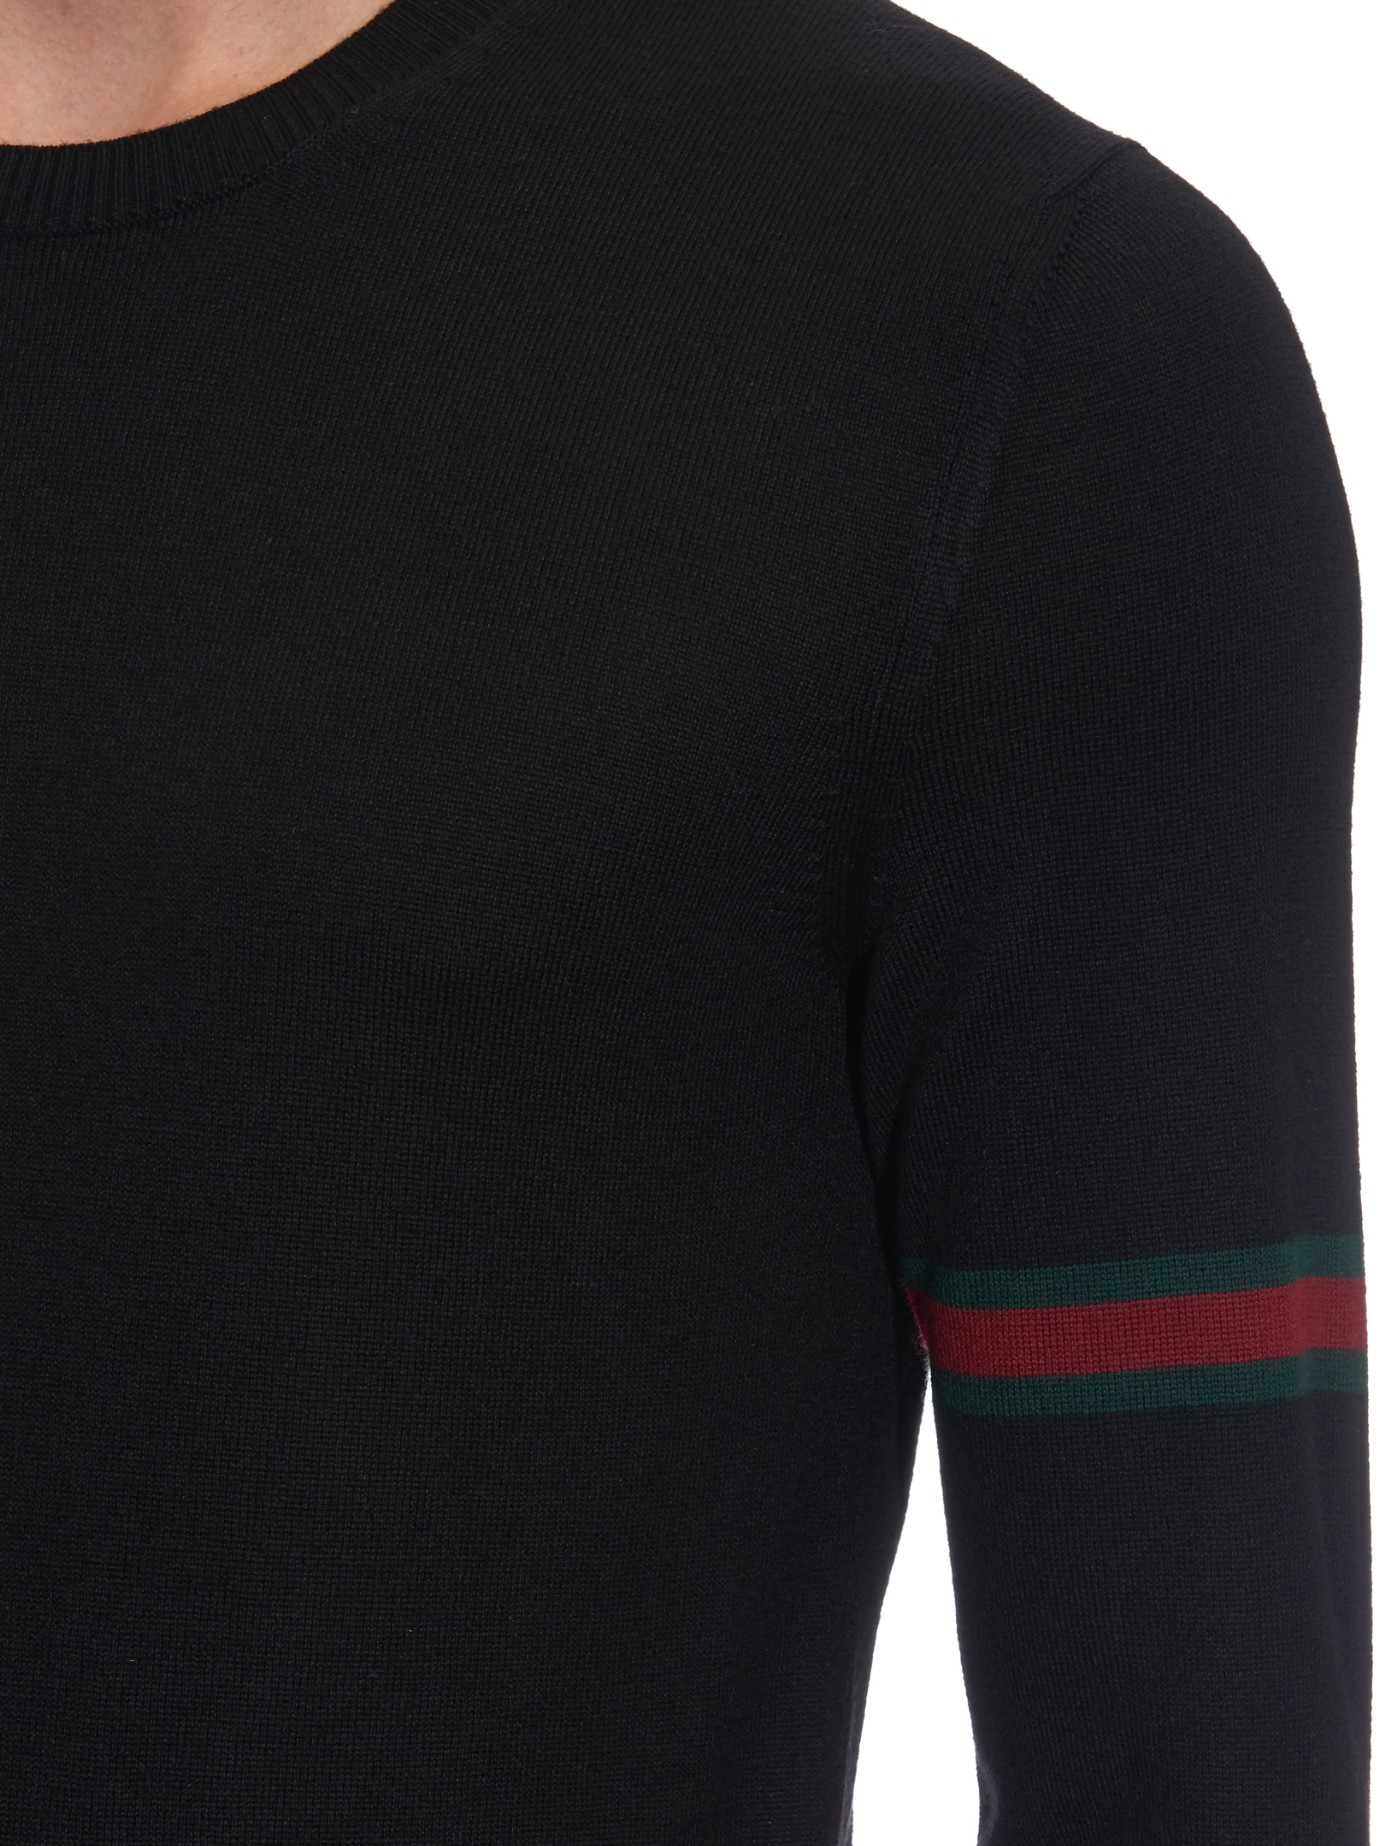 bc270a418105dc Lyst - Gucci Crew-Neck Wool-Knit Sweater in Black for Men